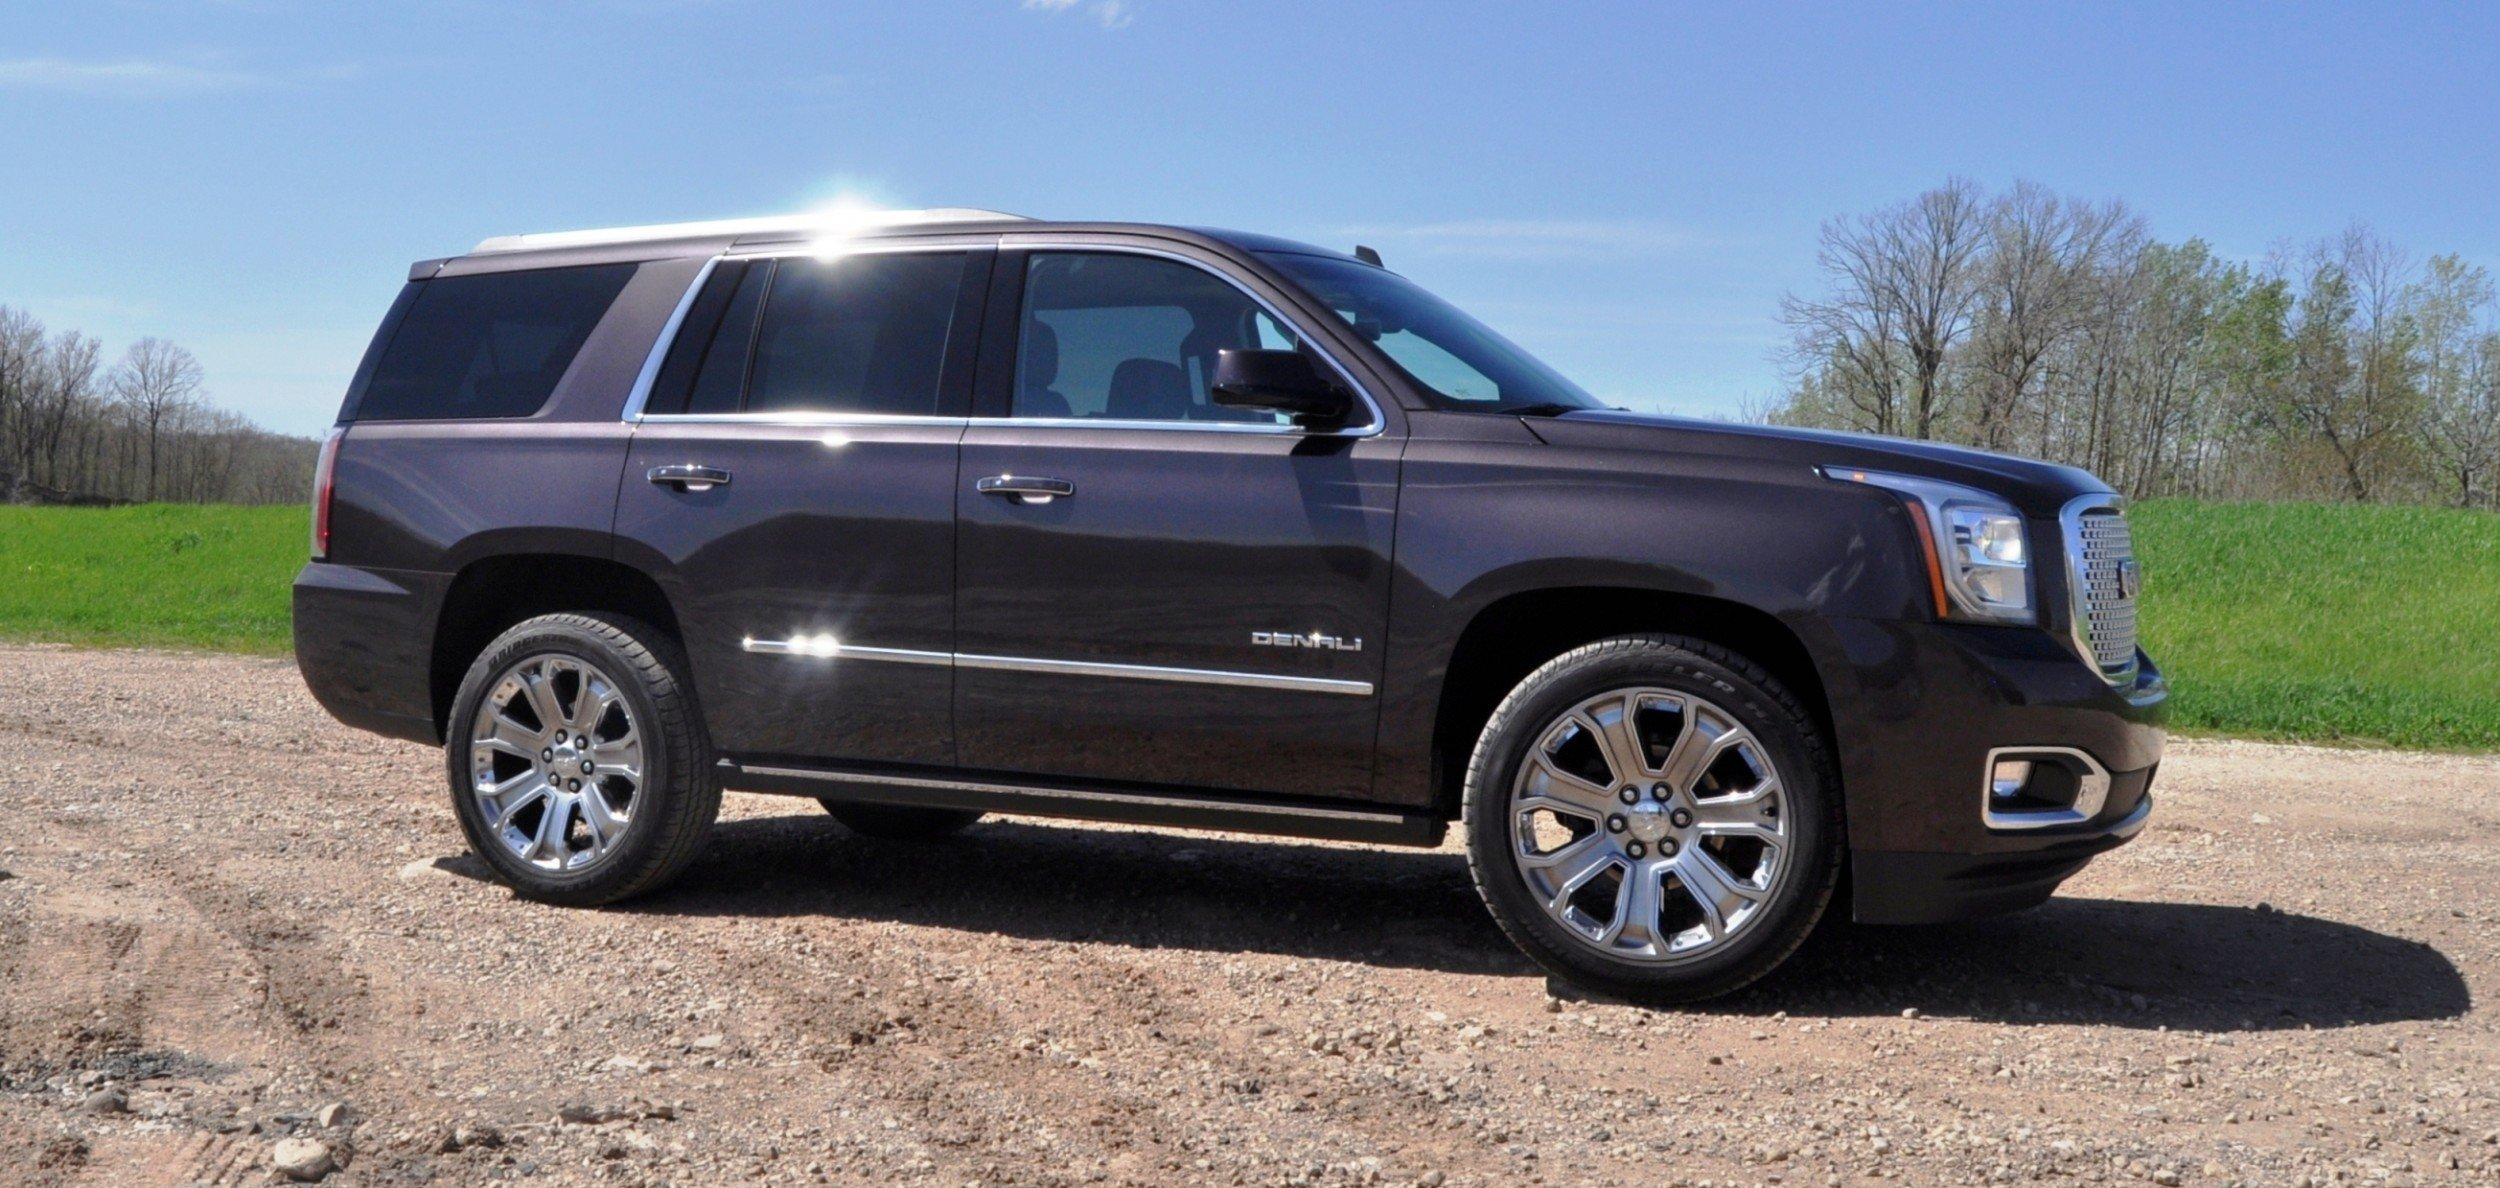 tahoe car the revs daily com reviews denali gmc yukon review